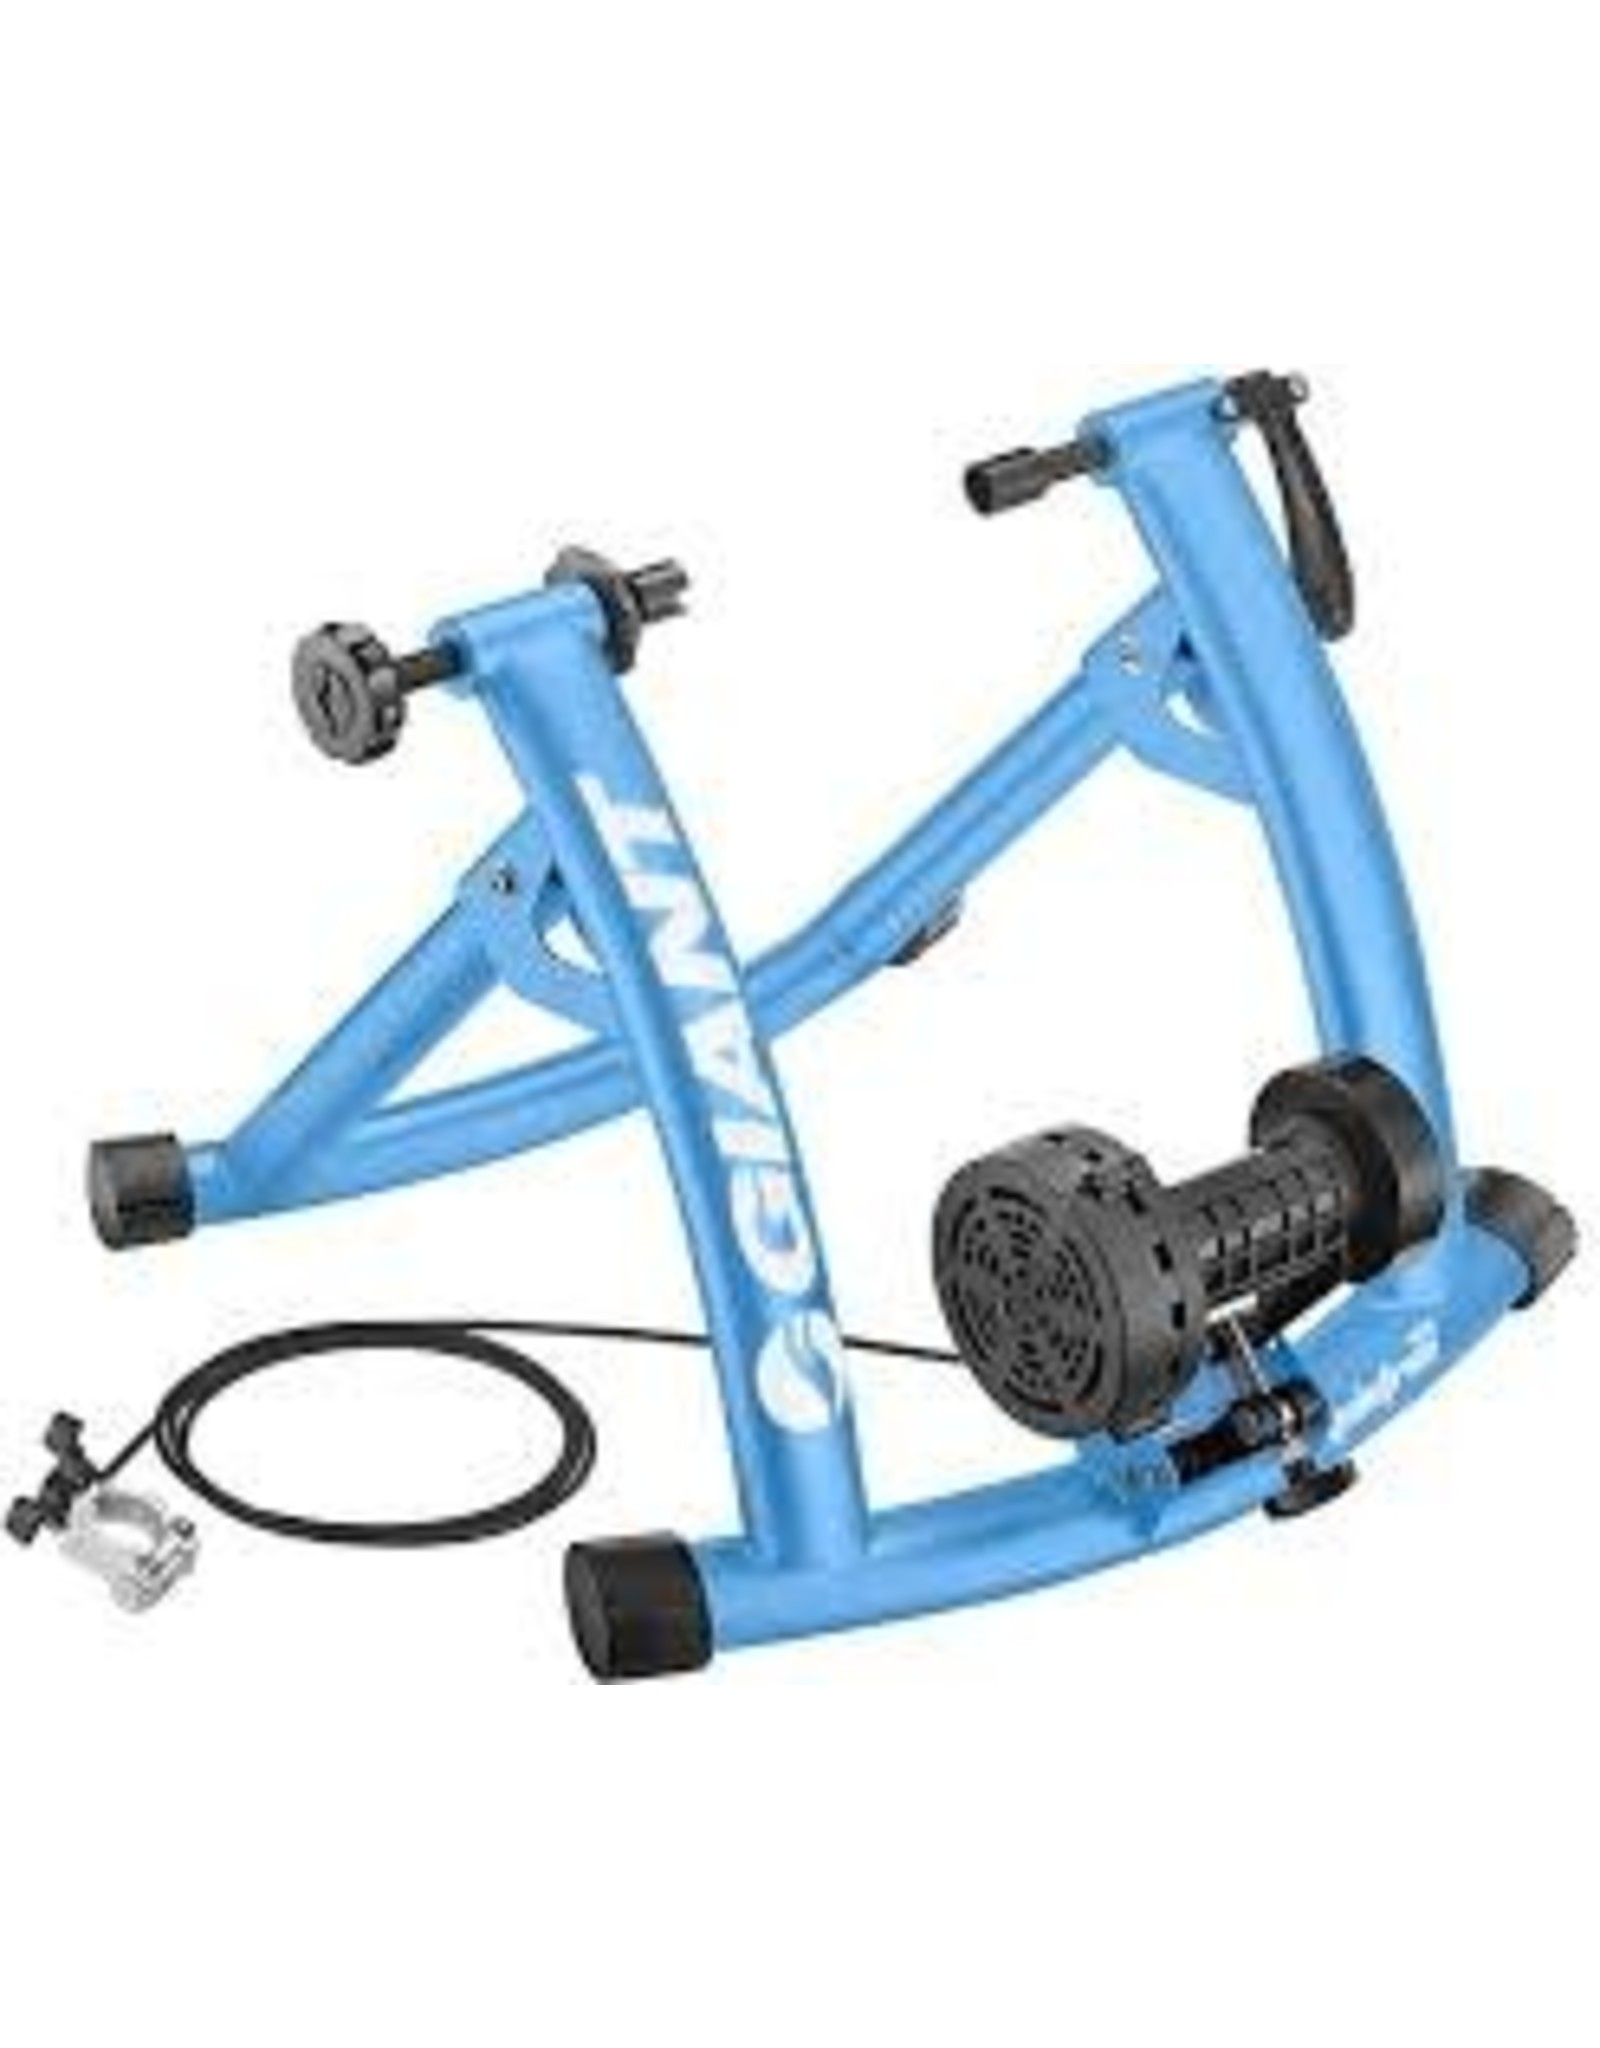 GIANT BICYCLES CYCLOTRON MAG TRAINER